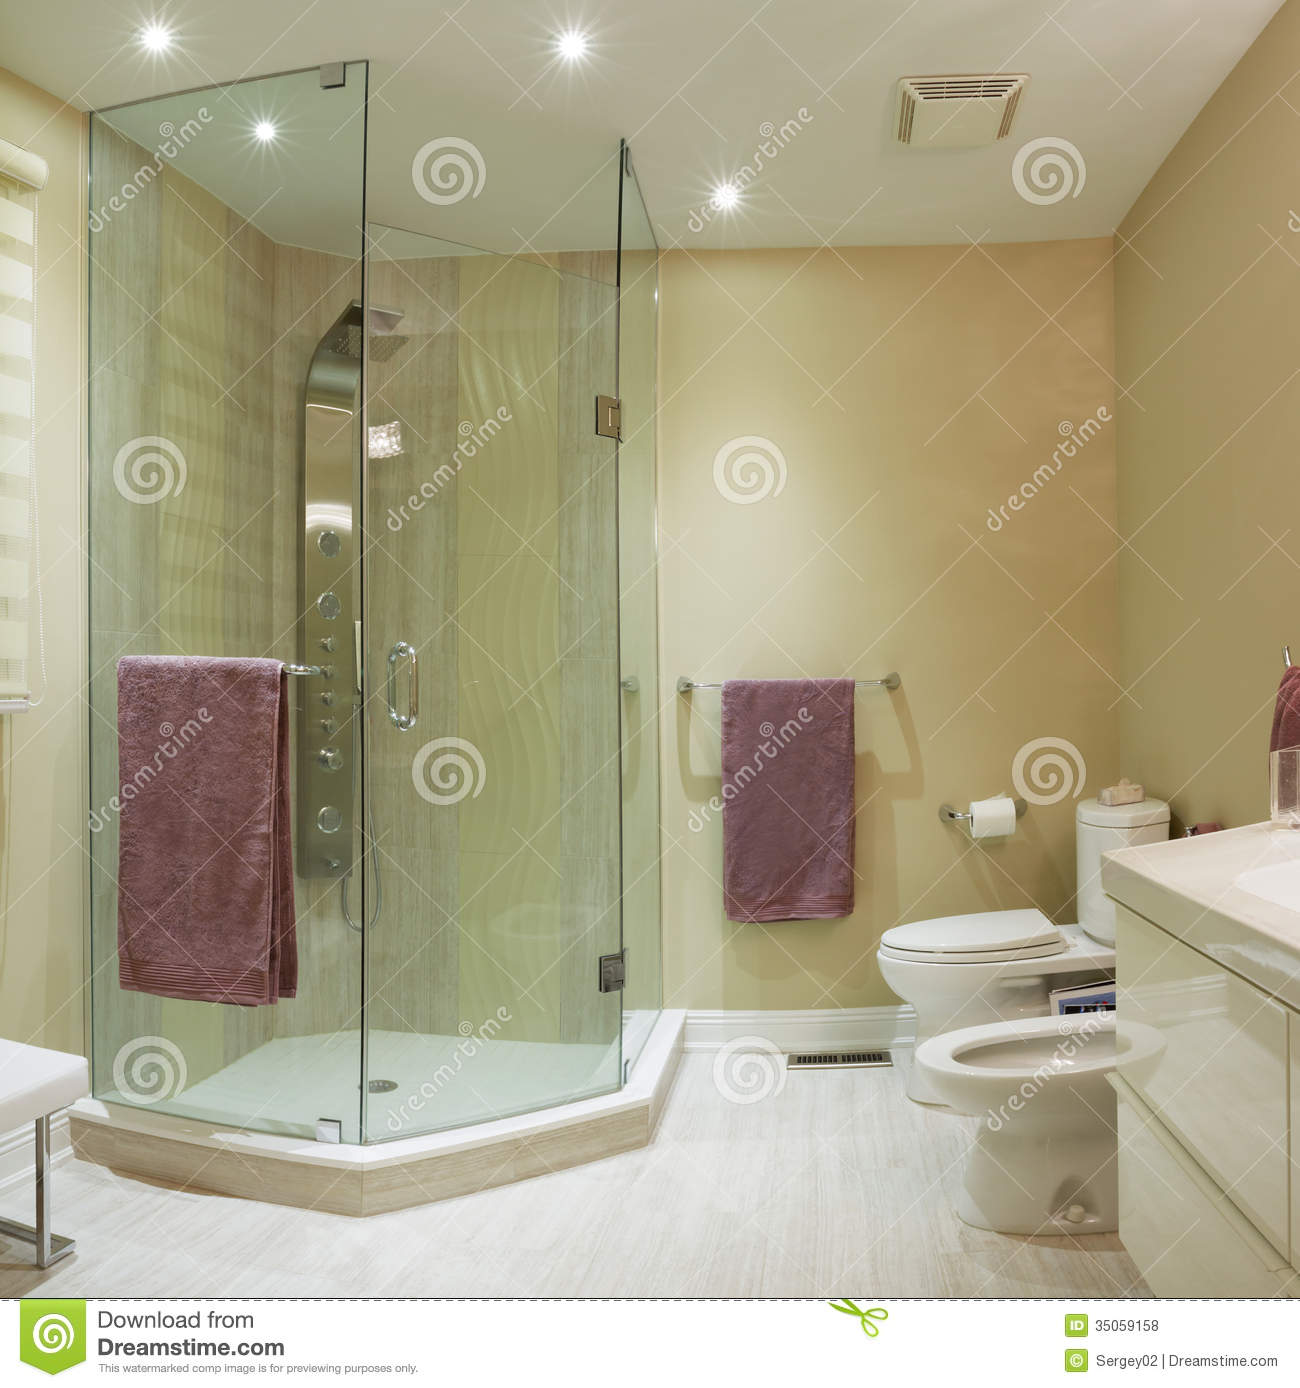 House Bathroom Design Interior Design Stock Photo Image Of Floor Household